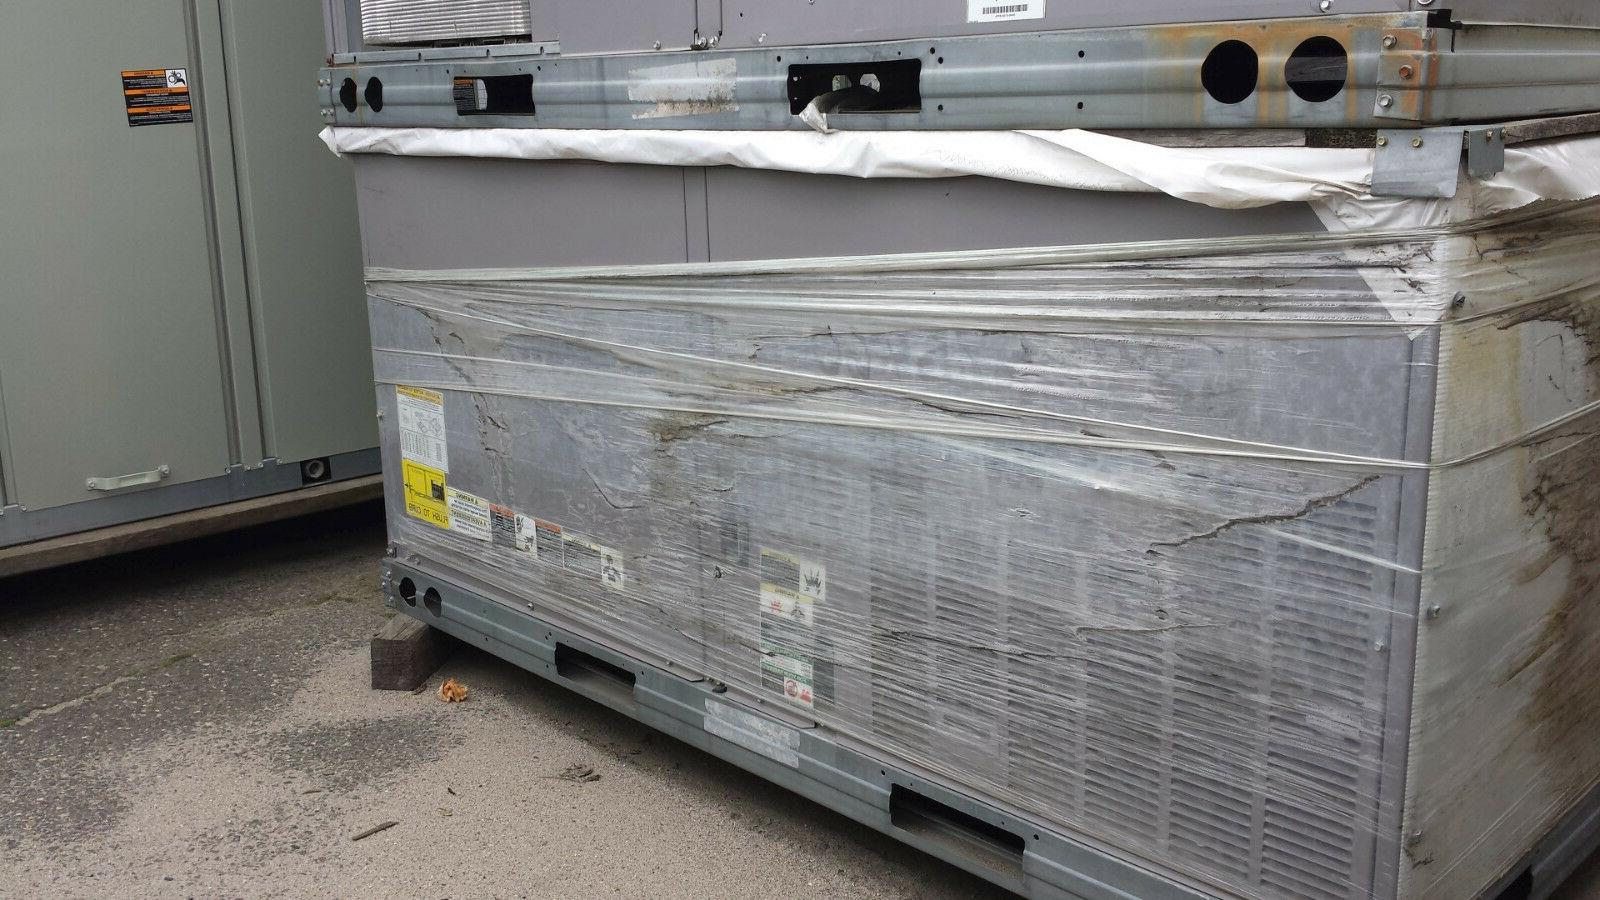 weathermaker 4 ton model 48tc packaged air